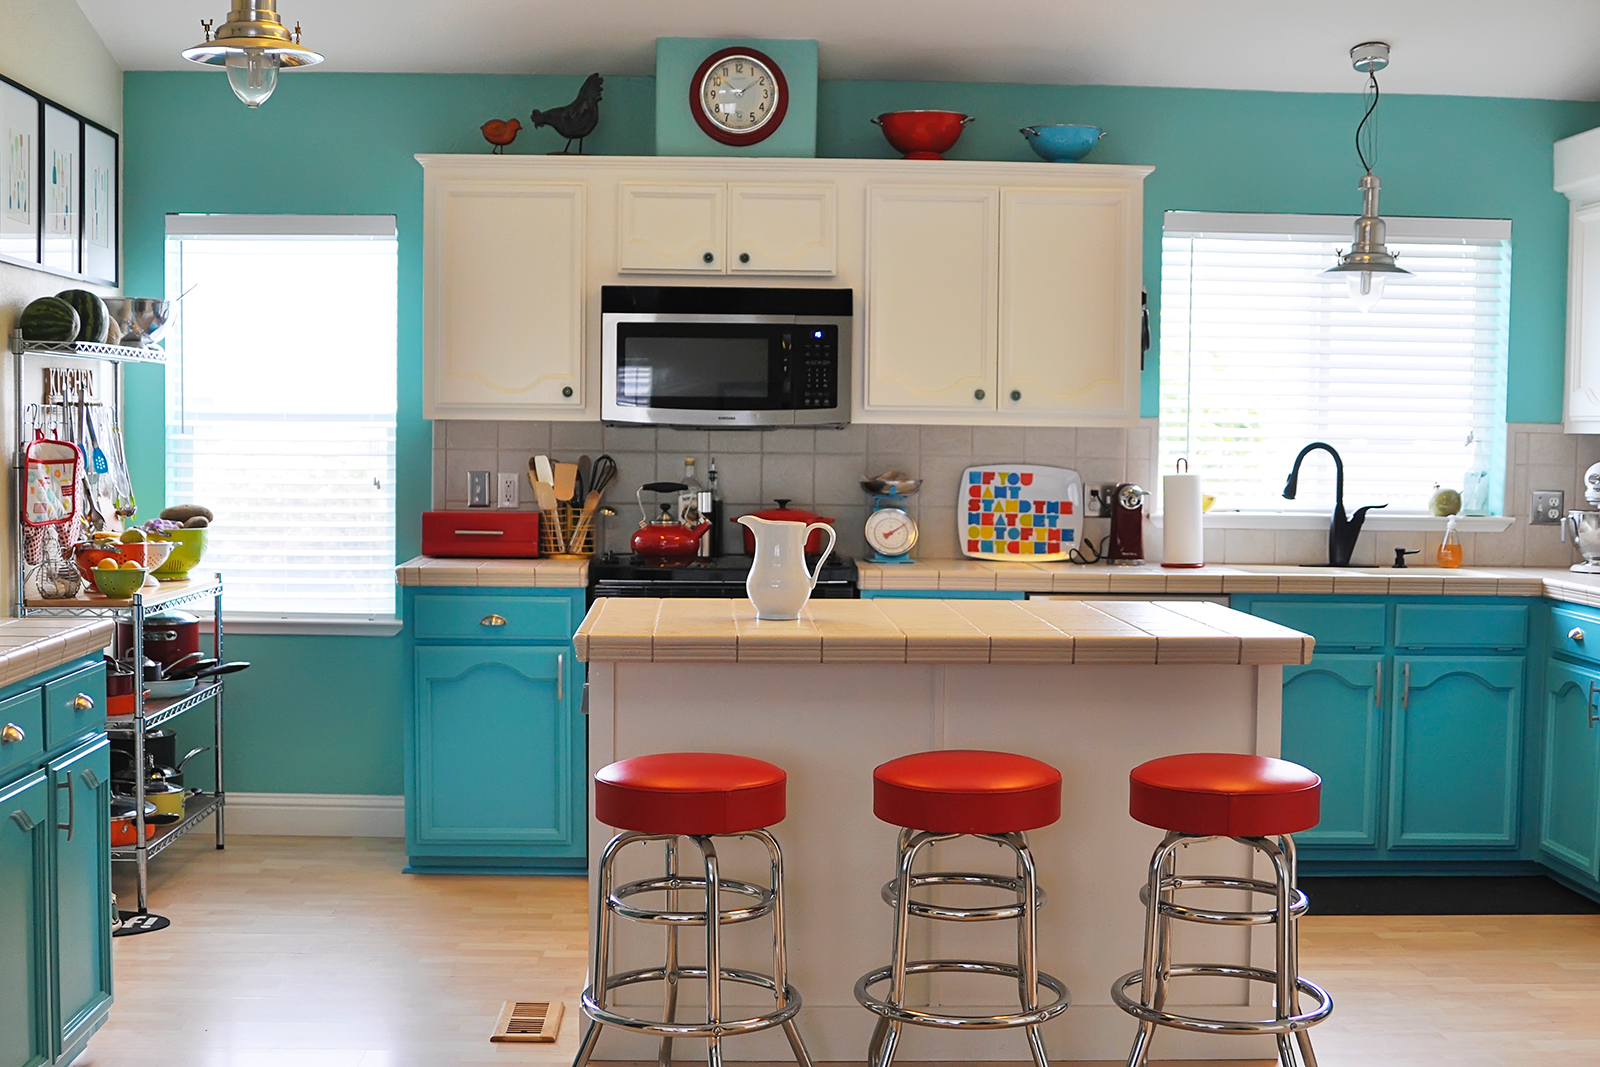 tips for kitchen remodeling kitchen remodeling Kitchen Remodeling Decisions You ll Never Regret